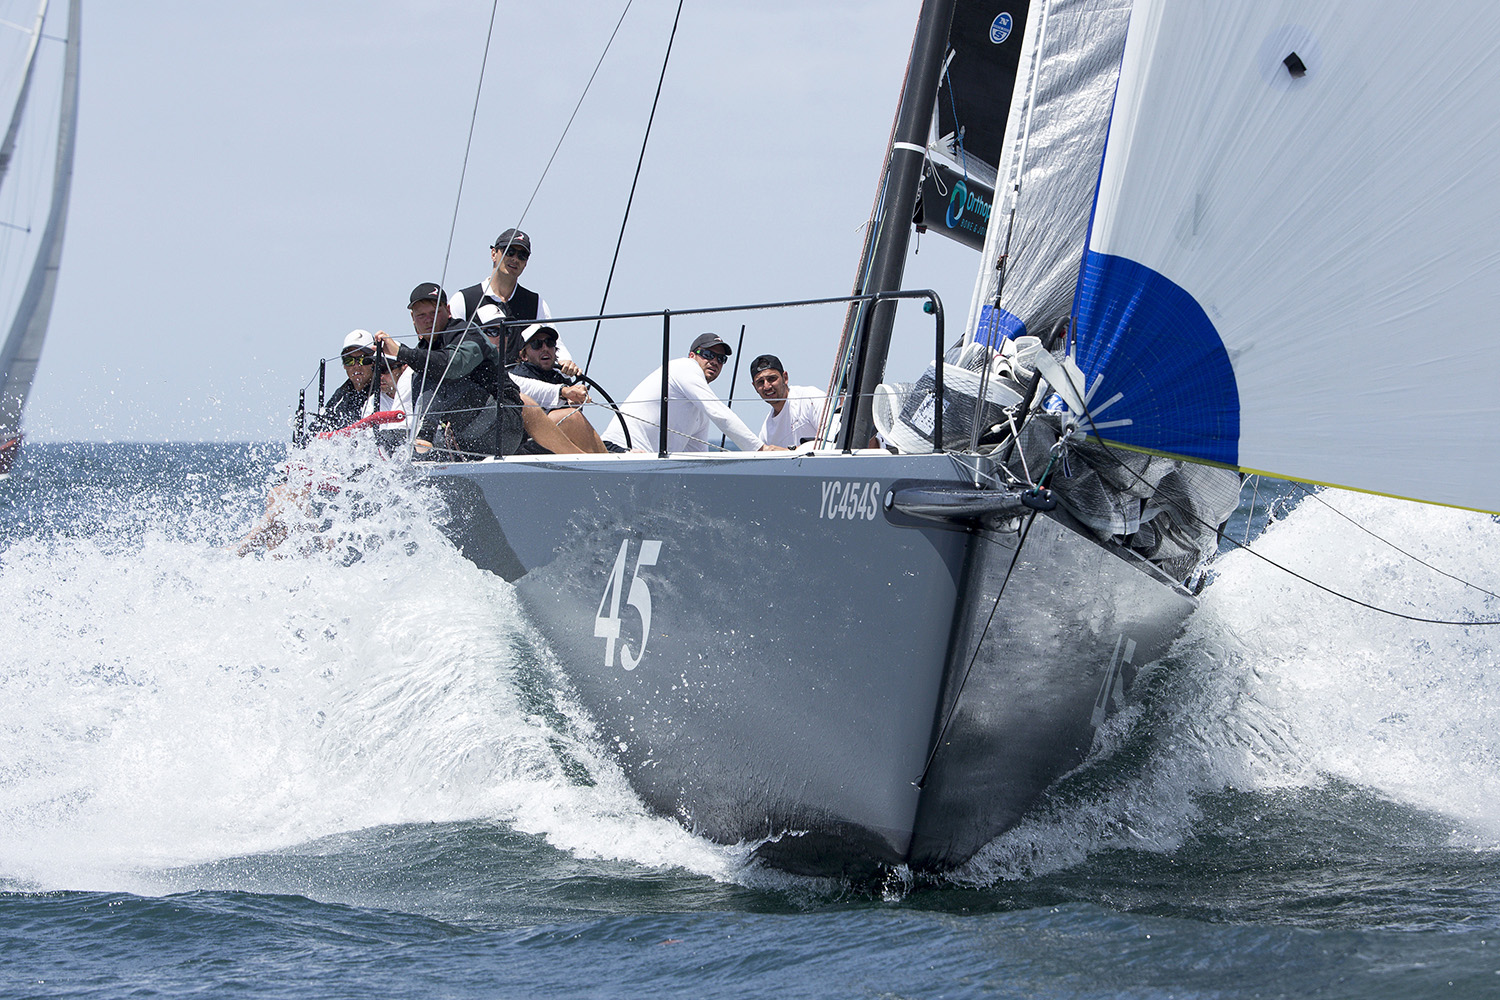 Concubine during the CYCA Trophy. Photo Andrea Francolini.